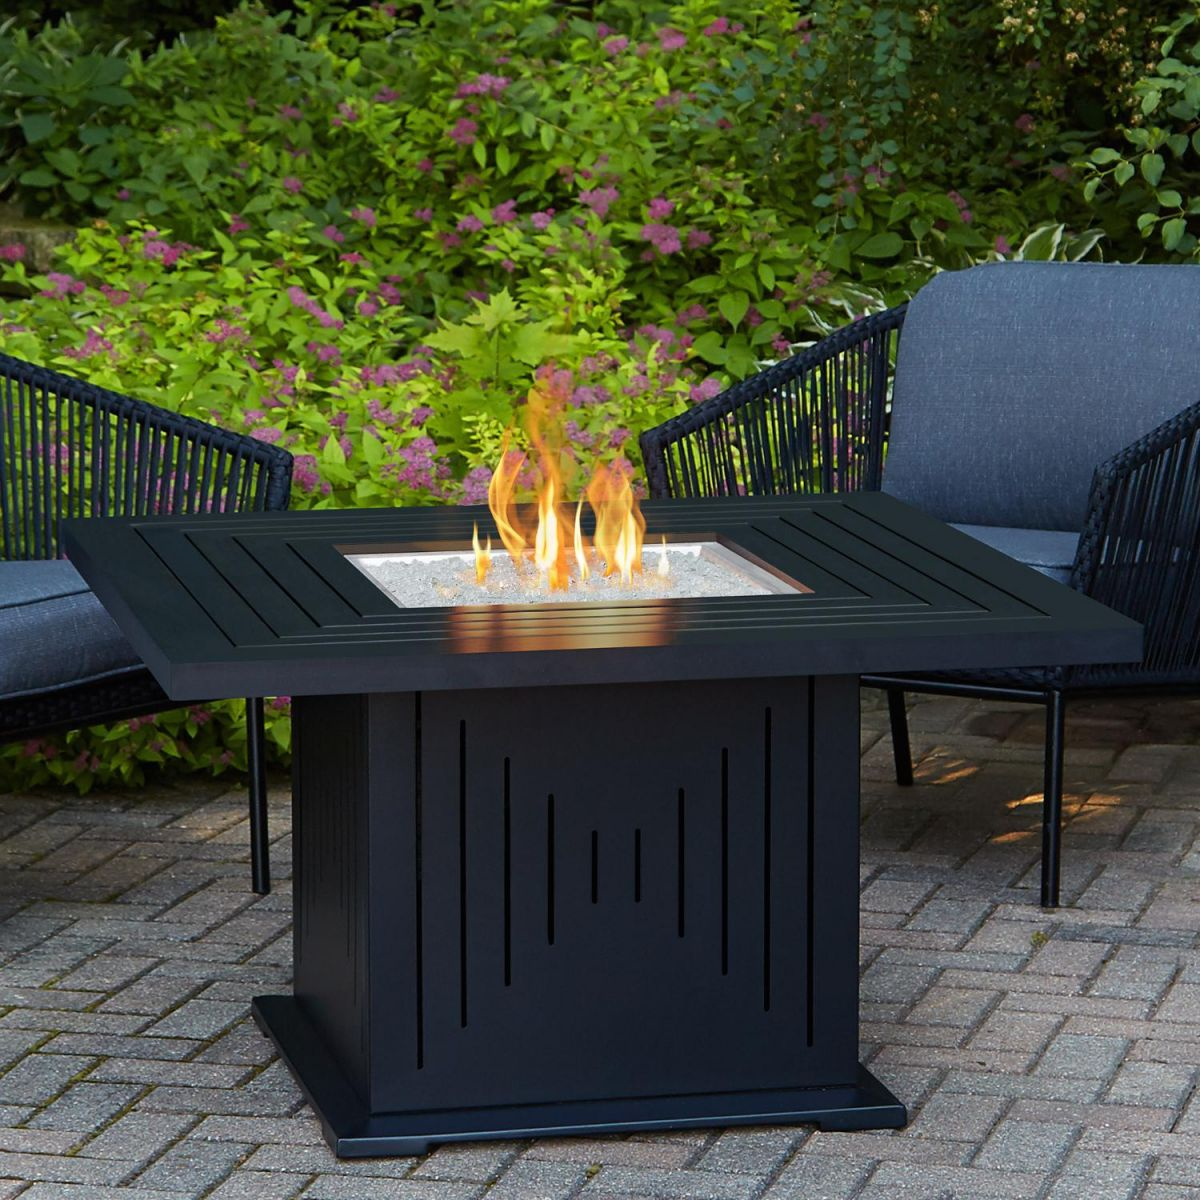 Real Flame Cavalier 43-Inch Square Propane Fire Pit Table – Black inside Lovely Outdoor Propane Fire Pit